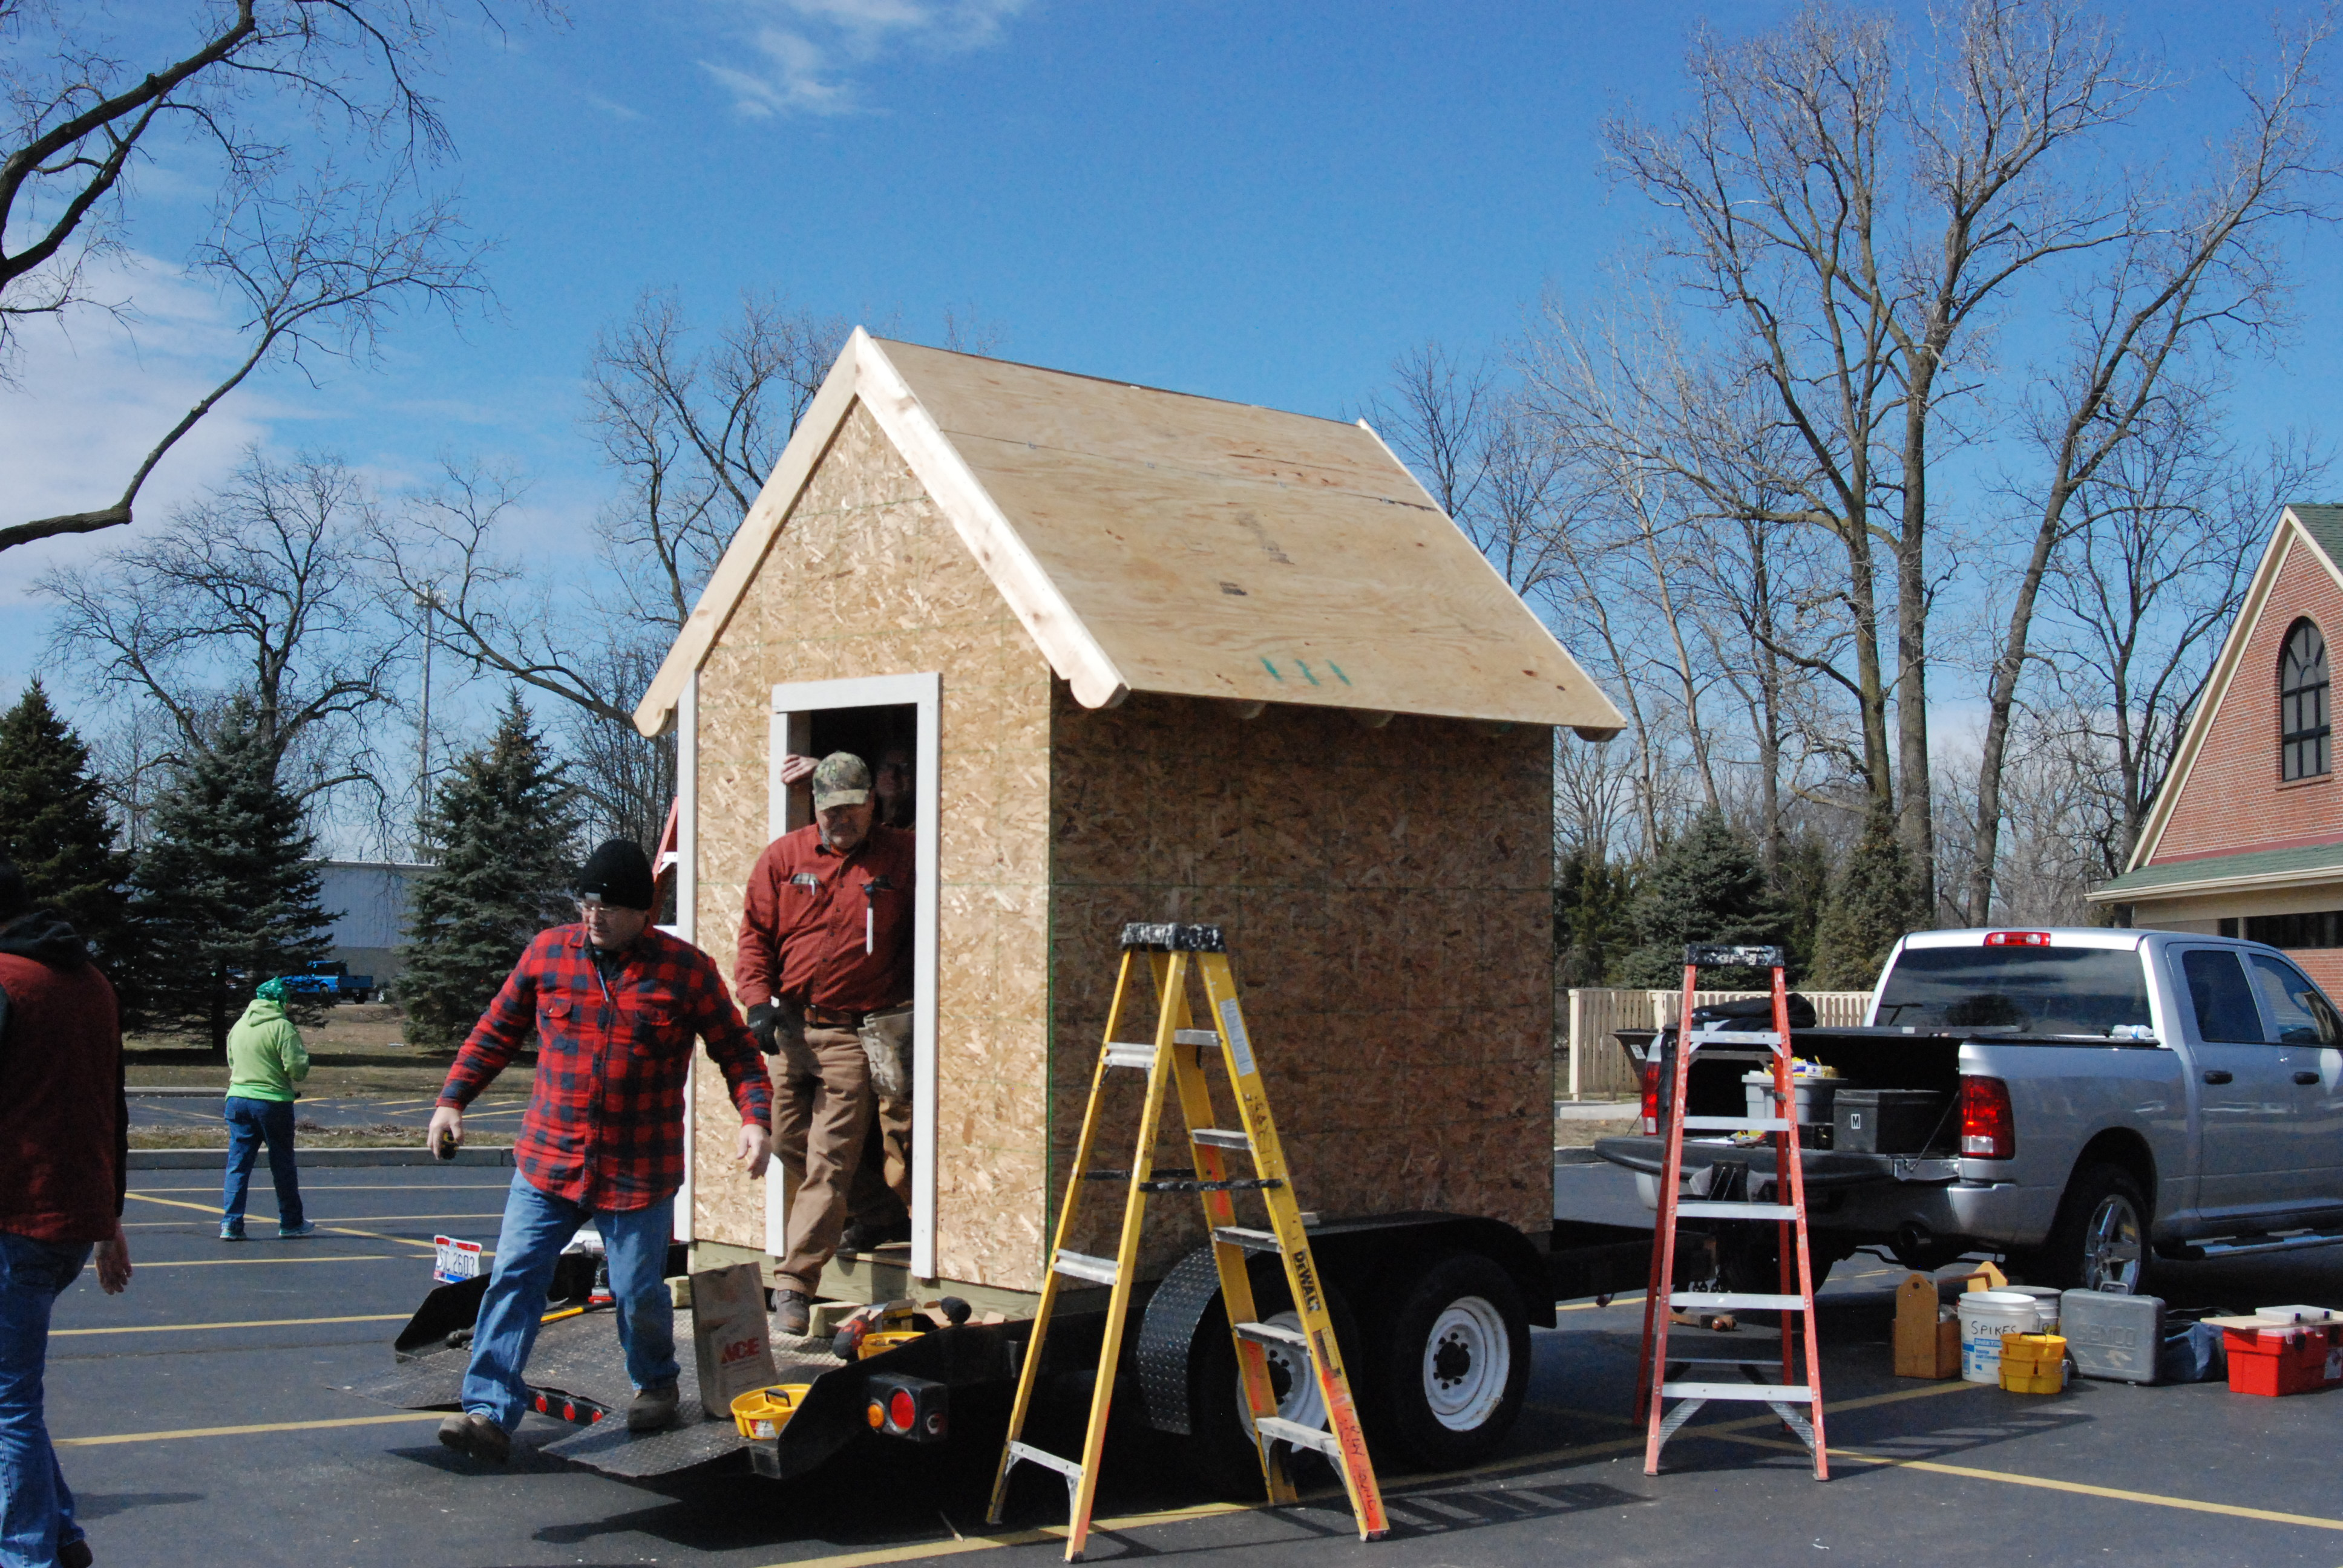 See the 2018 Playhouse Build photo gallery!